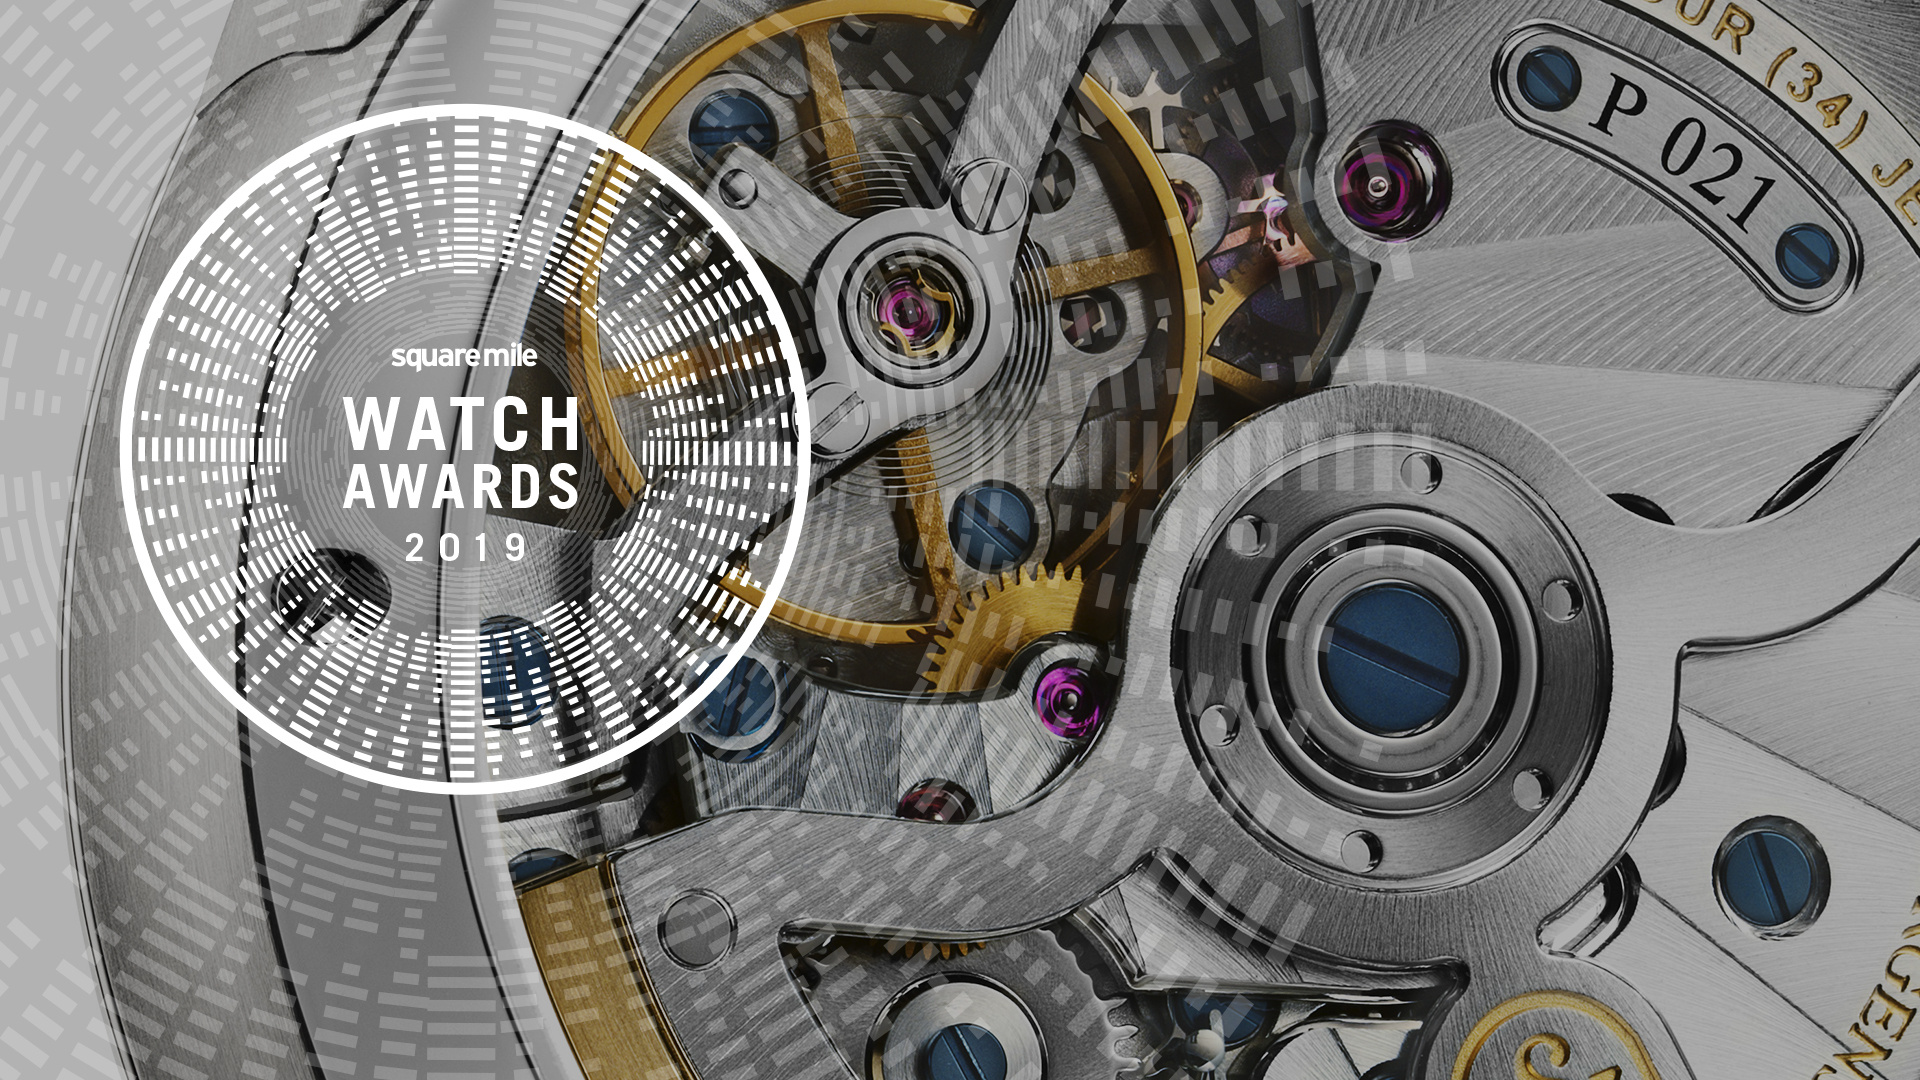 Best Independent Watches Square Mile Watch Awards 2019